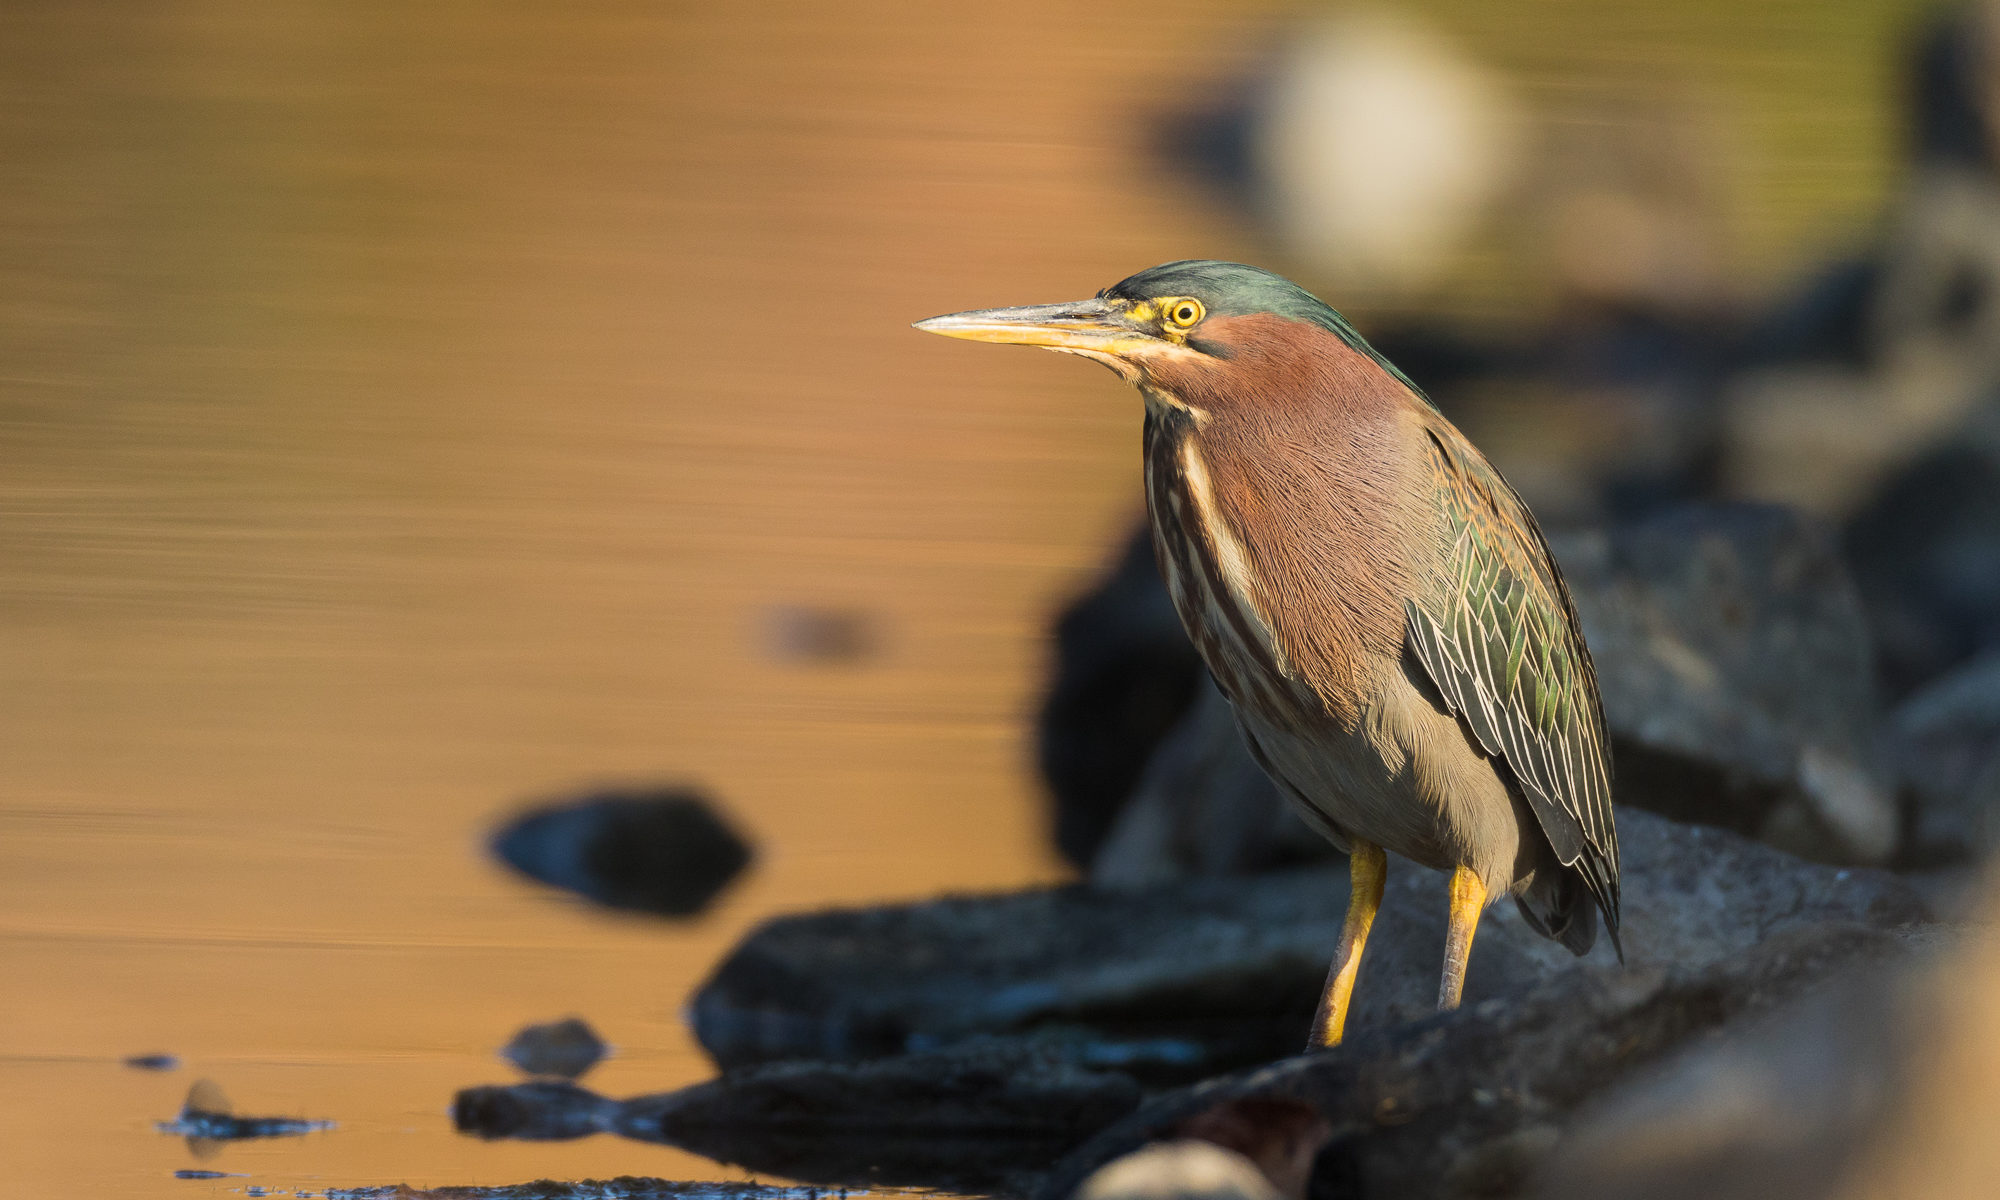 A green heron perches next to still water, reflecting fall colors, Redwood Shores, CA.